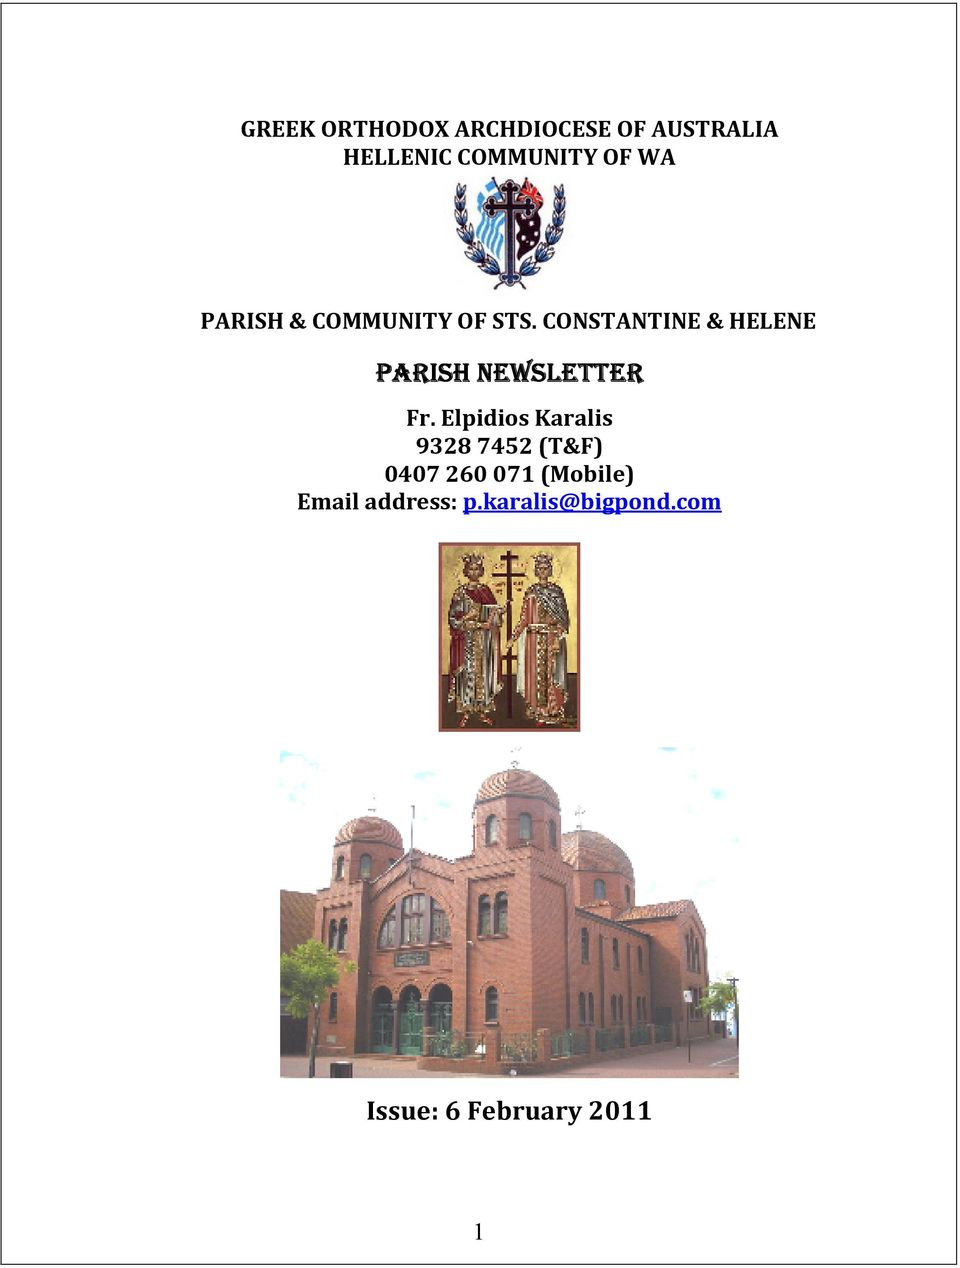 CONSTANTINE & HELENE PARISH NEWSLETTER Fr.